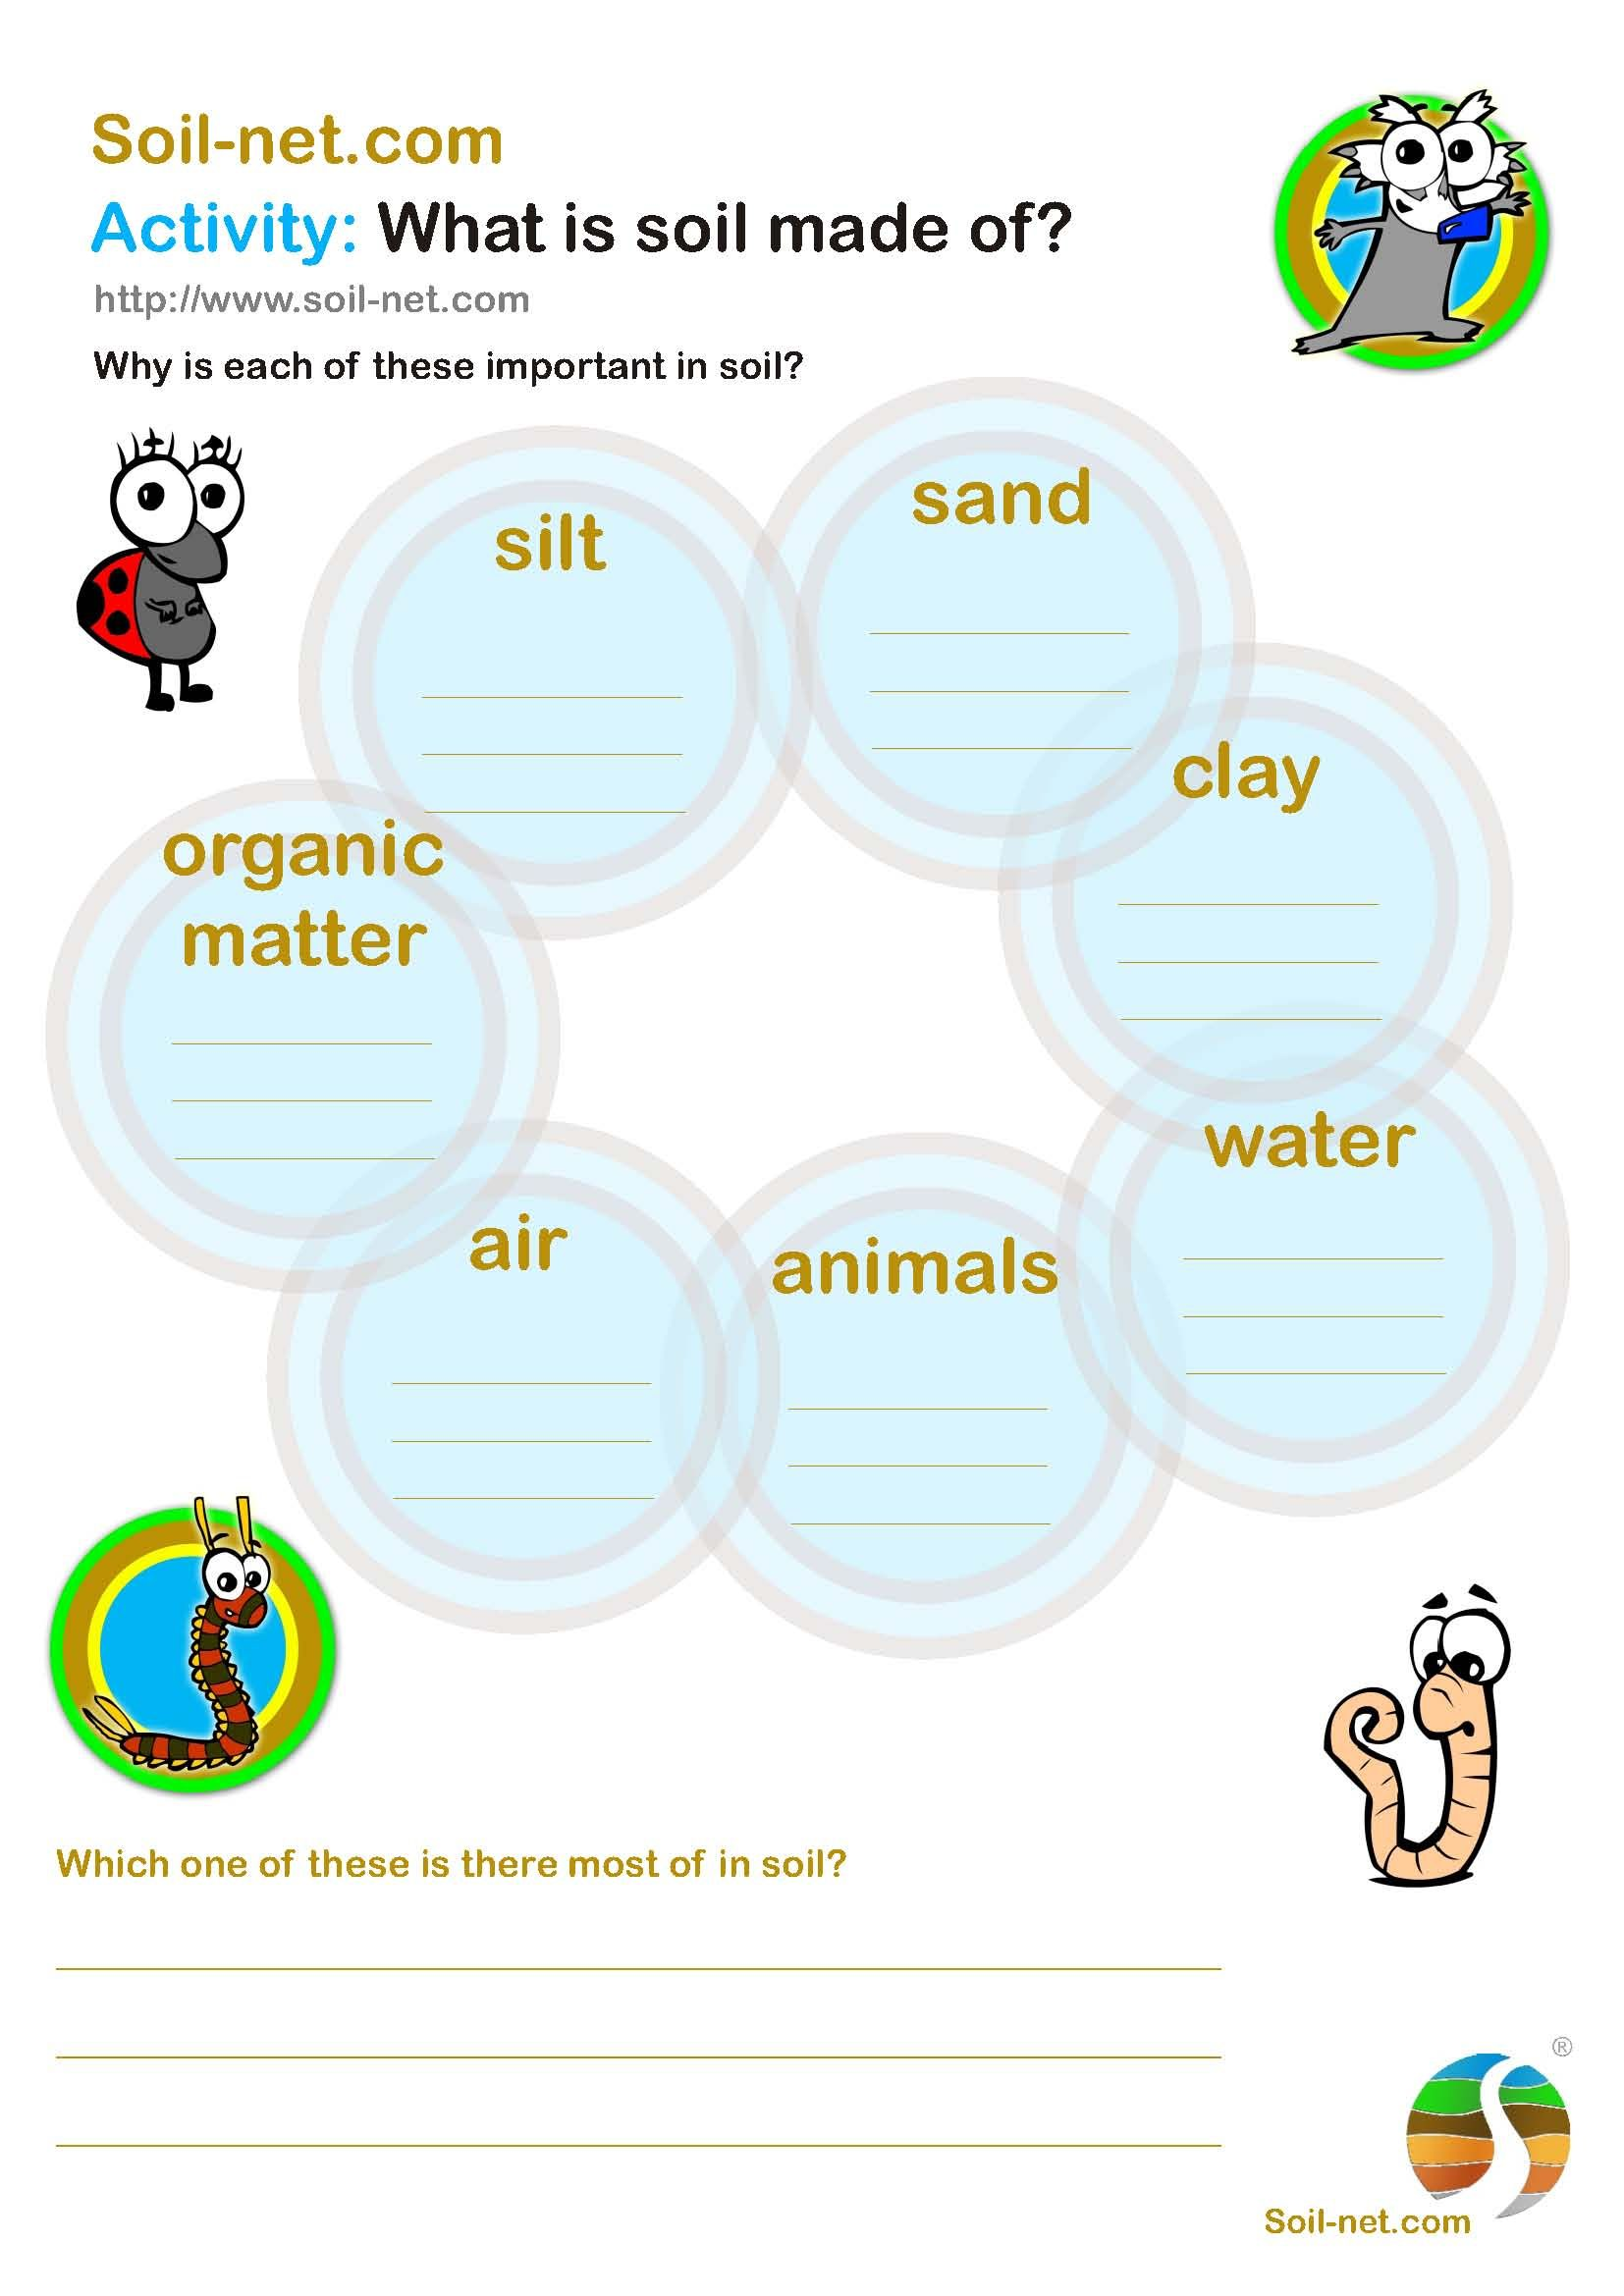 Great Worksheet For 2nd Grade Or 3rd Grade When Discussing Soil And What It Is Made Of Lots Of